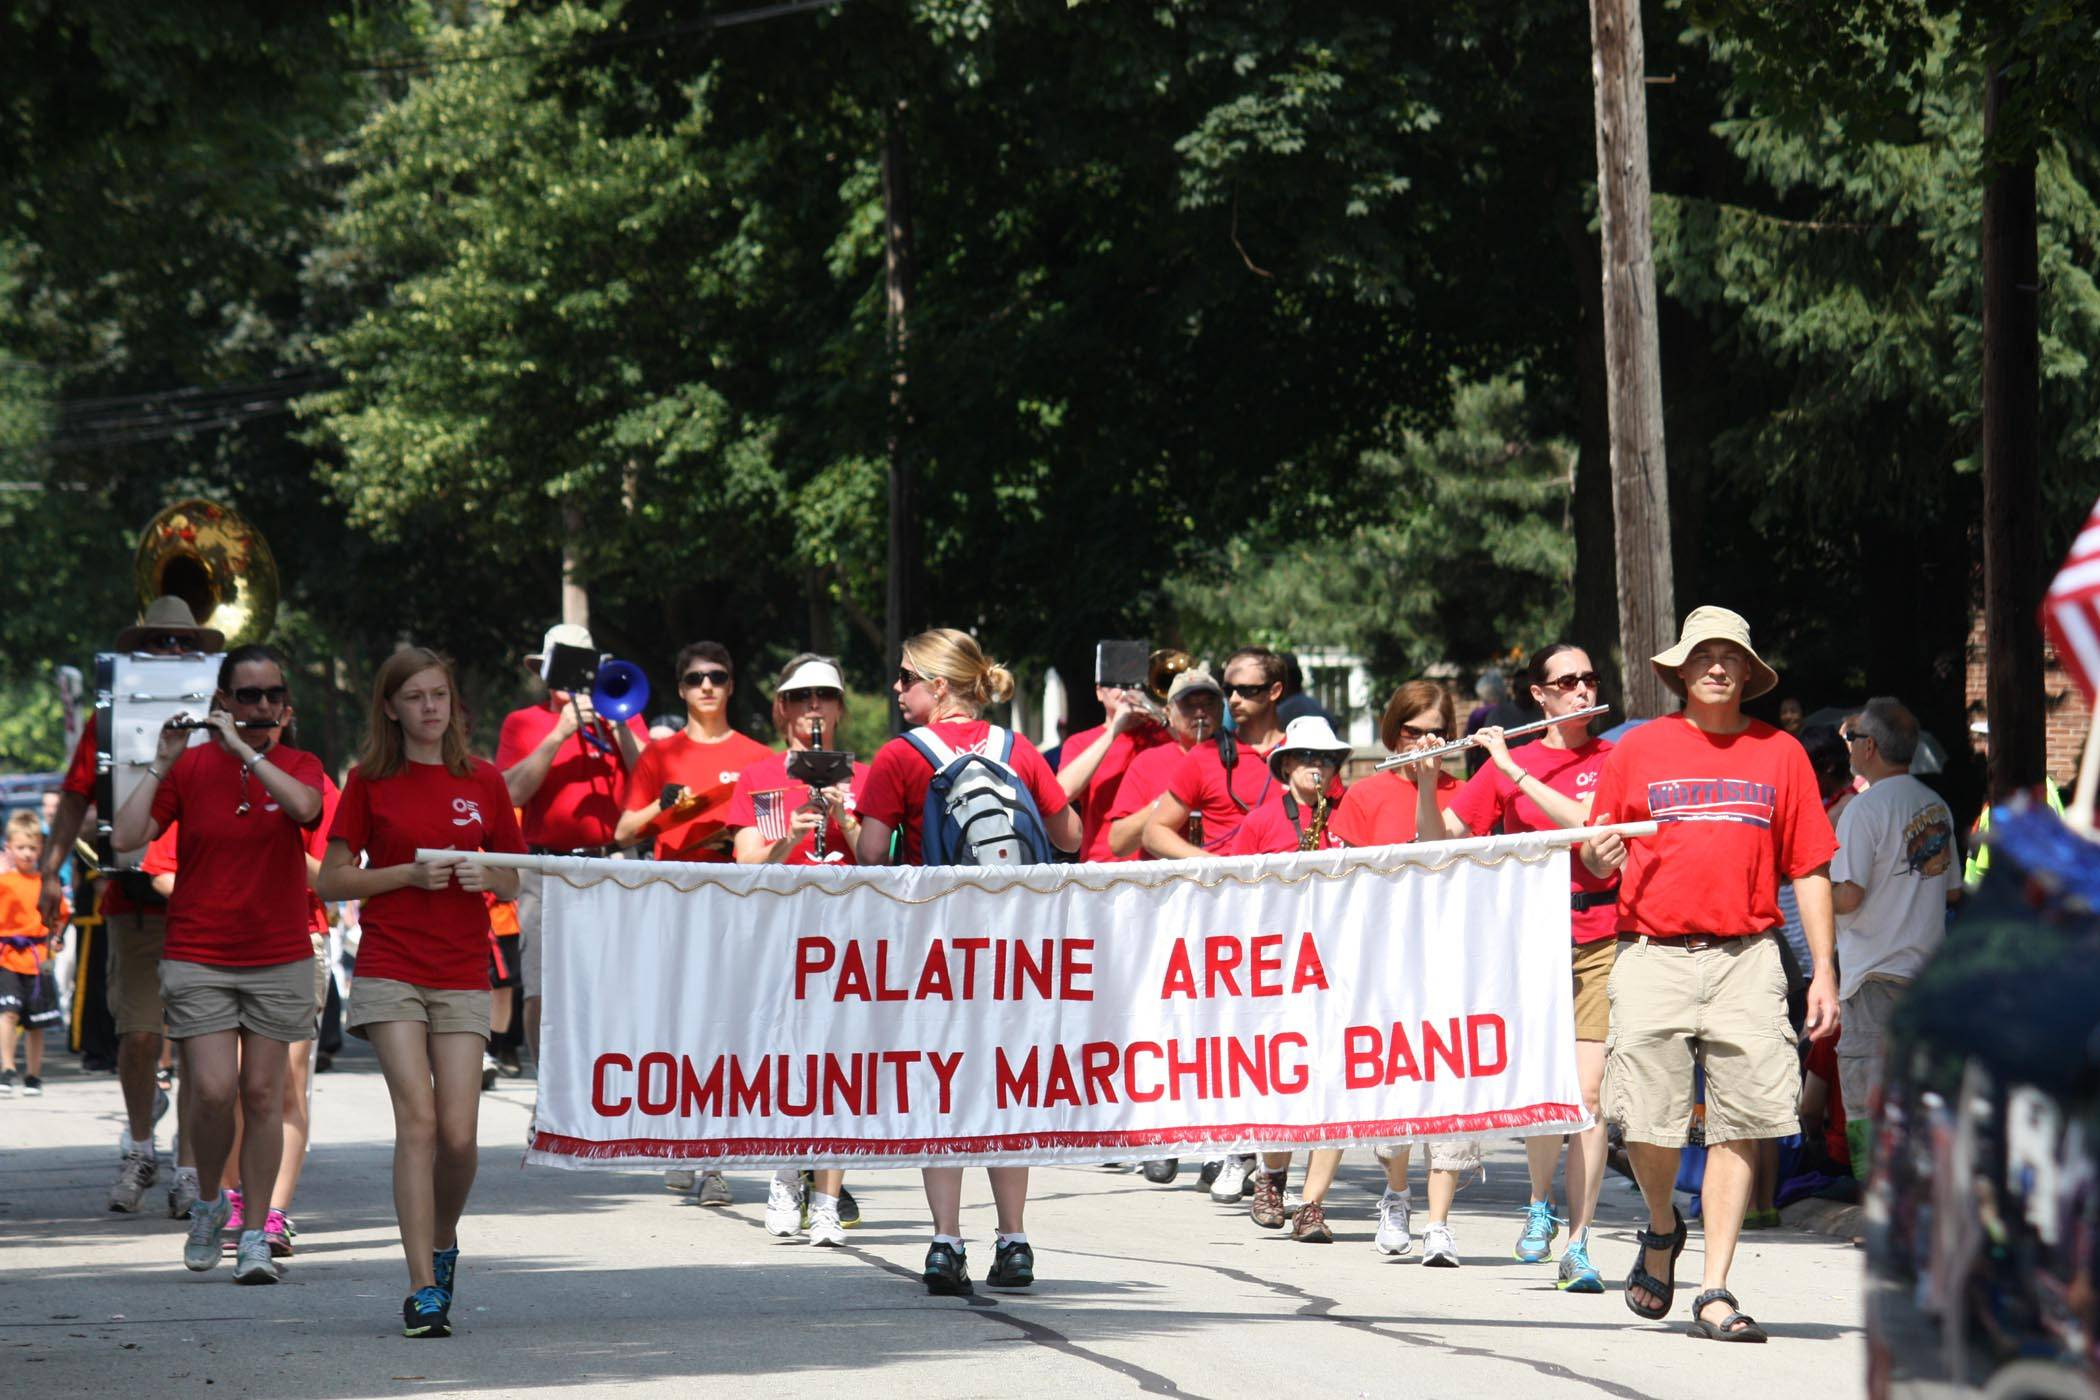 The Palatine Area Community Marching Band has performed in the Palatine Jaycees Hometown Fest Parade since 2008.Palatine Park District